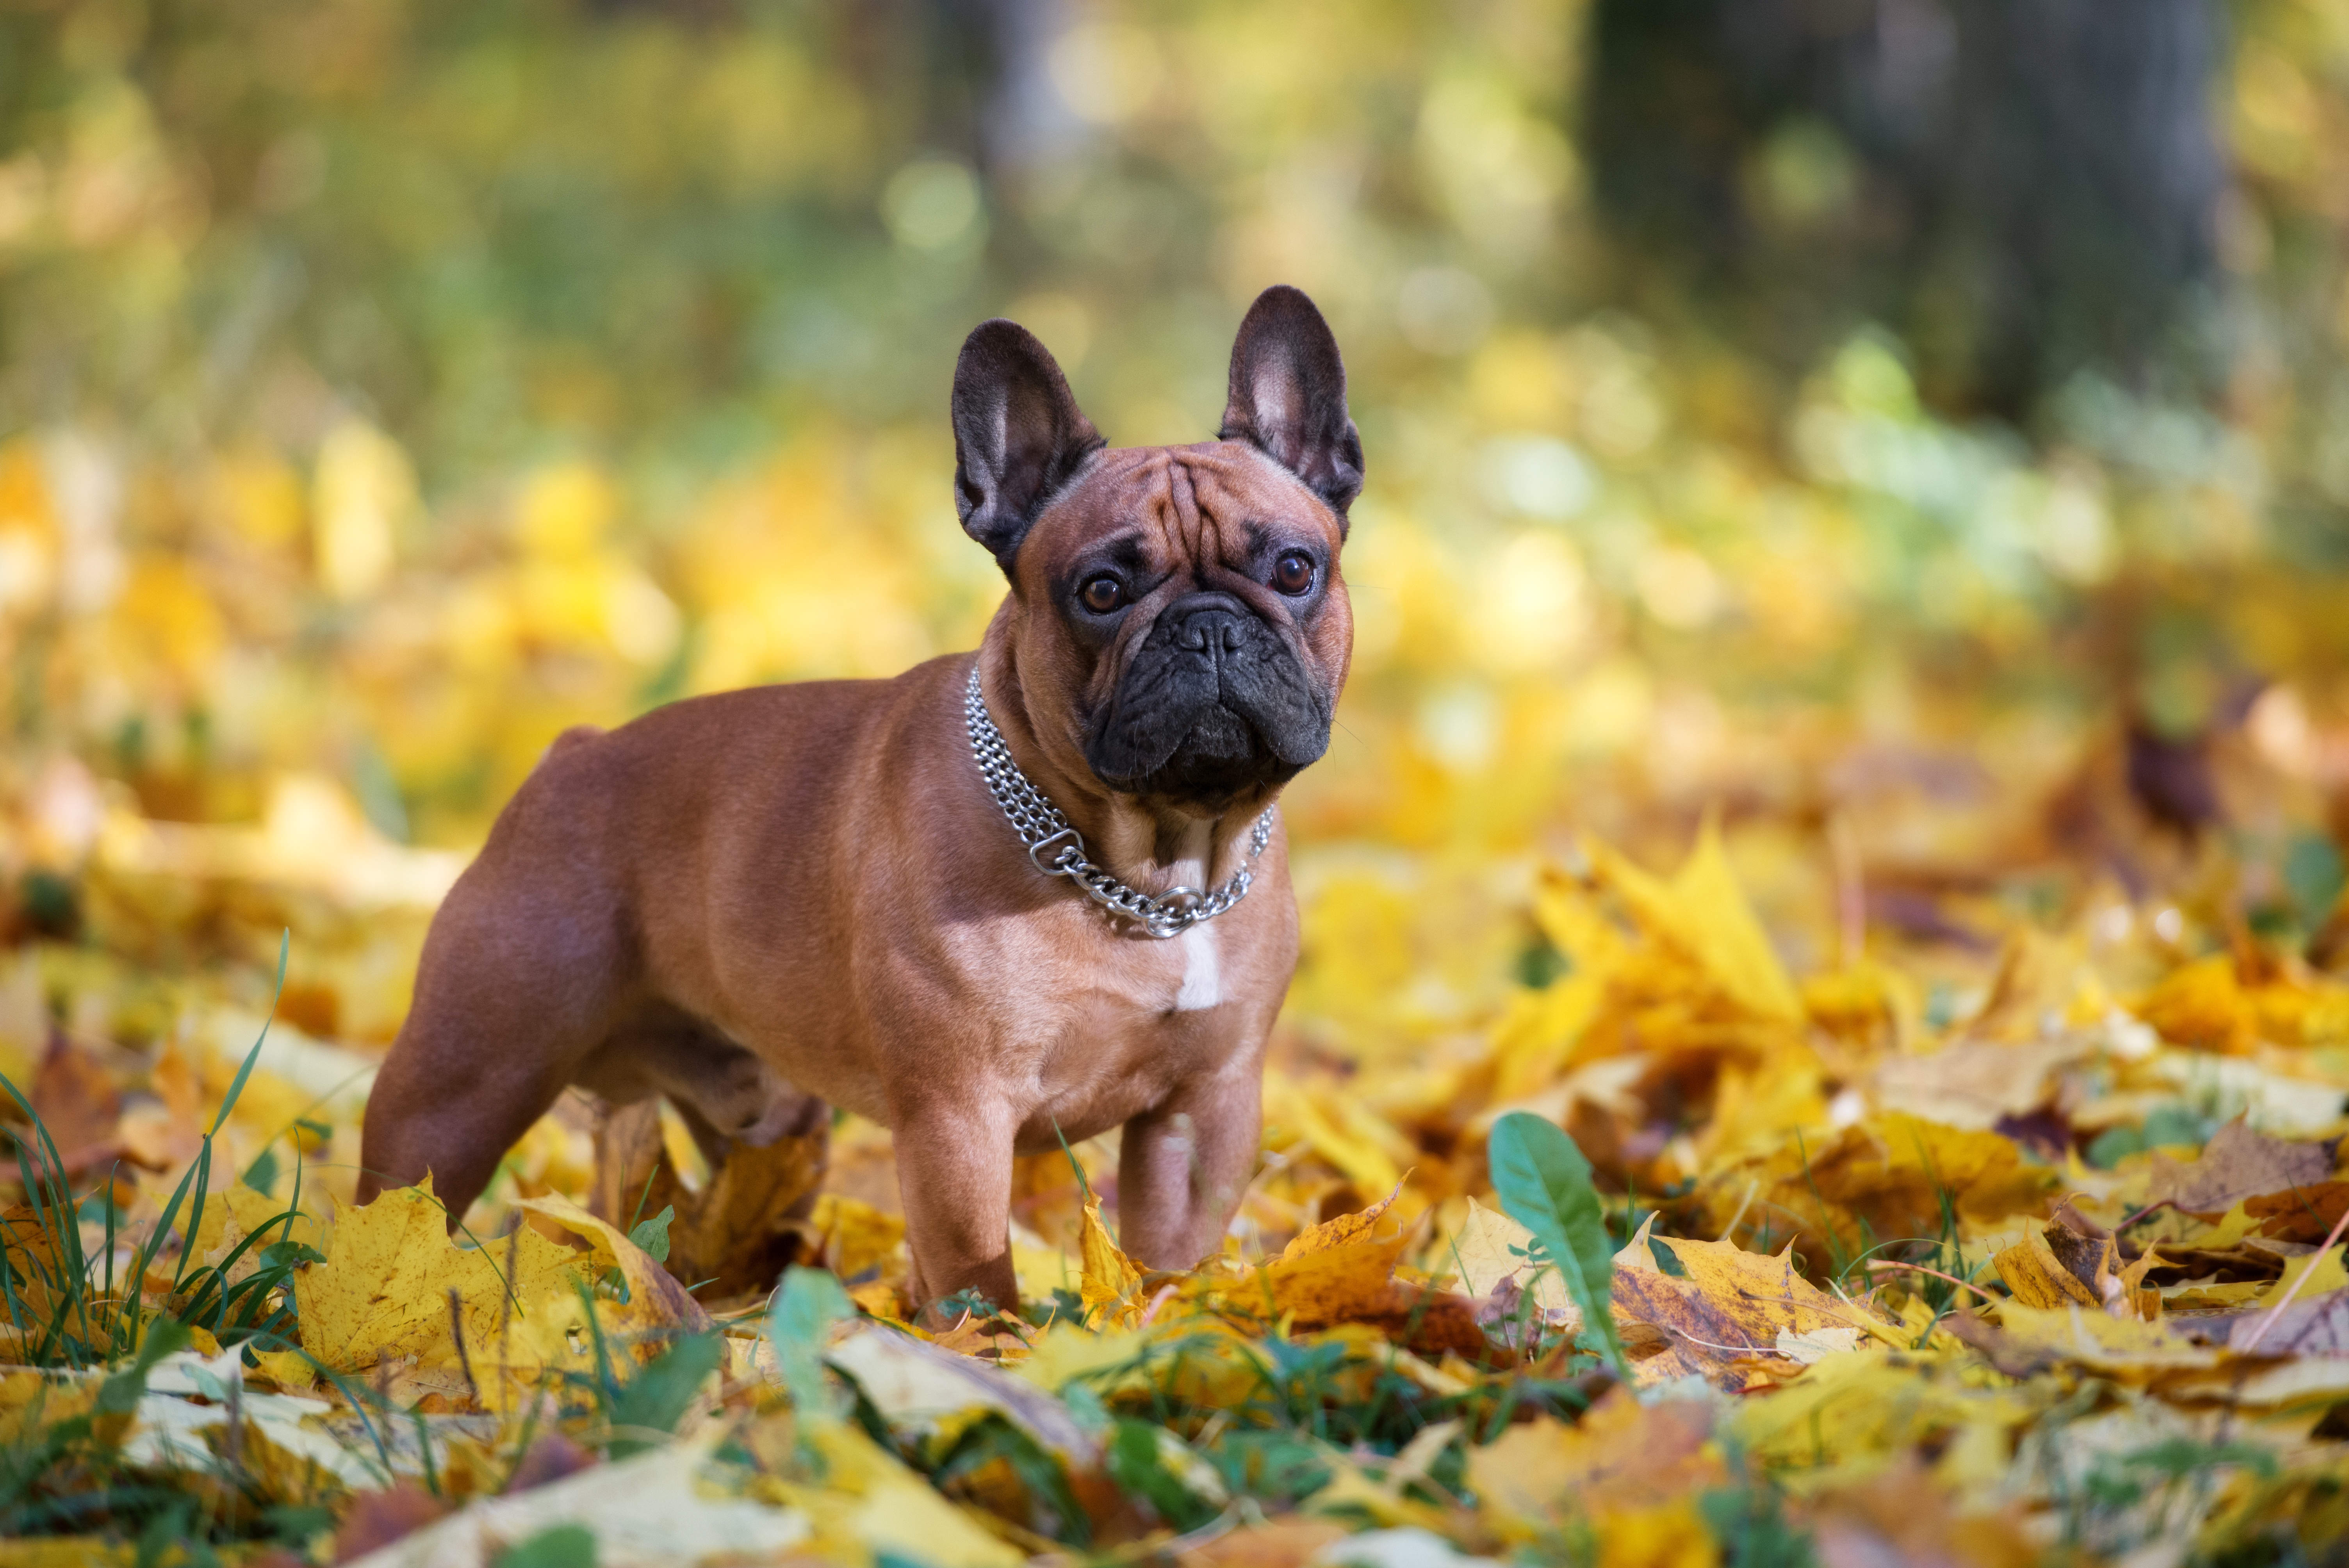 Brown French Bulldog standing in fallen yellow leaves in the forest.